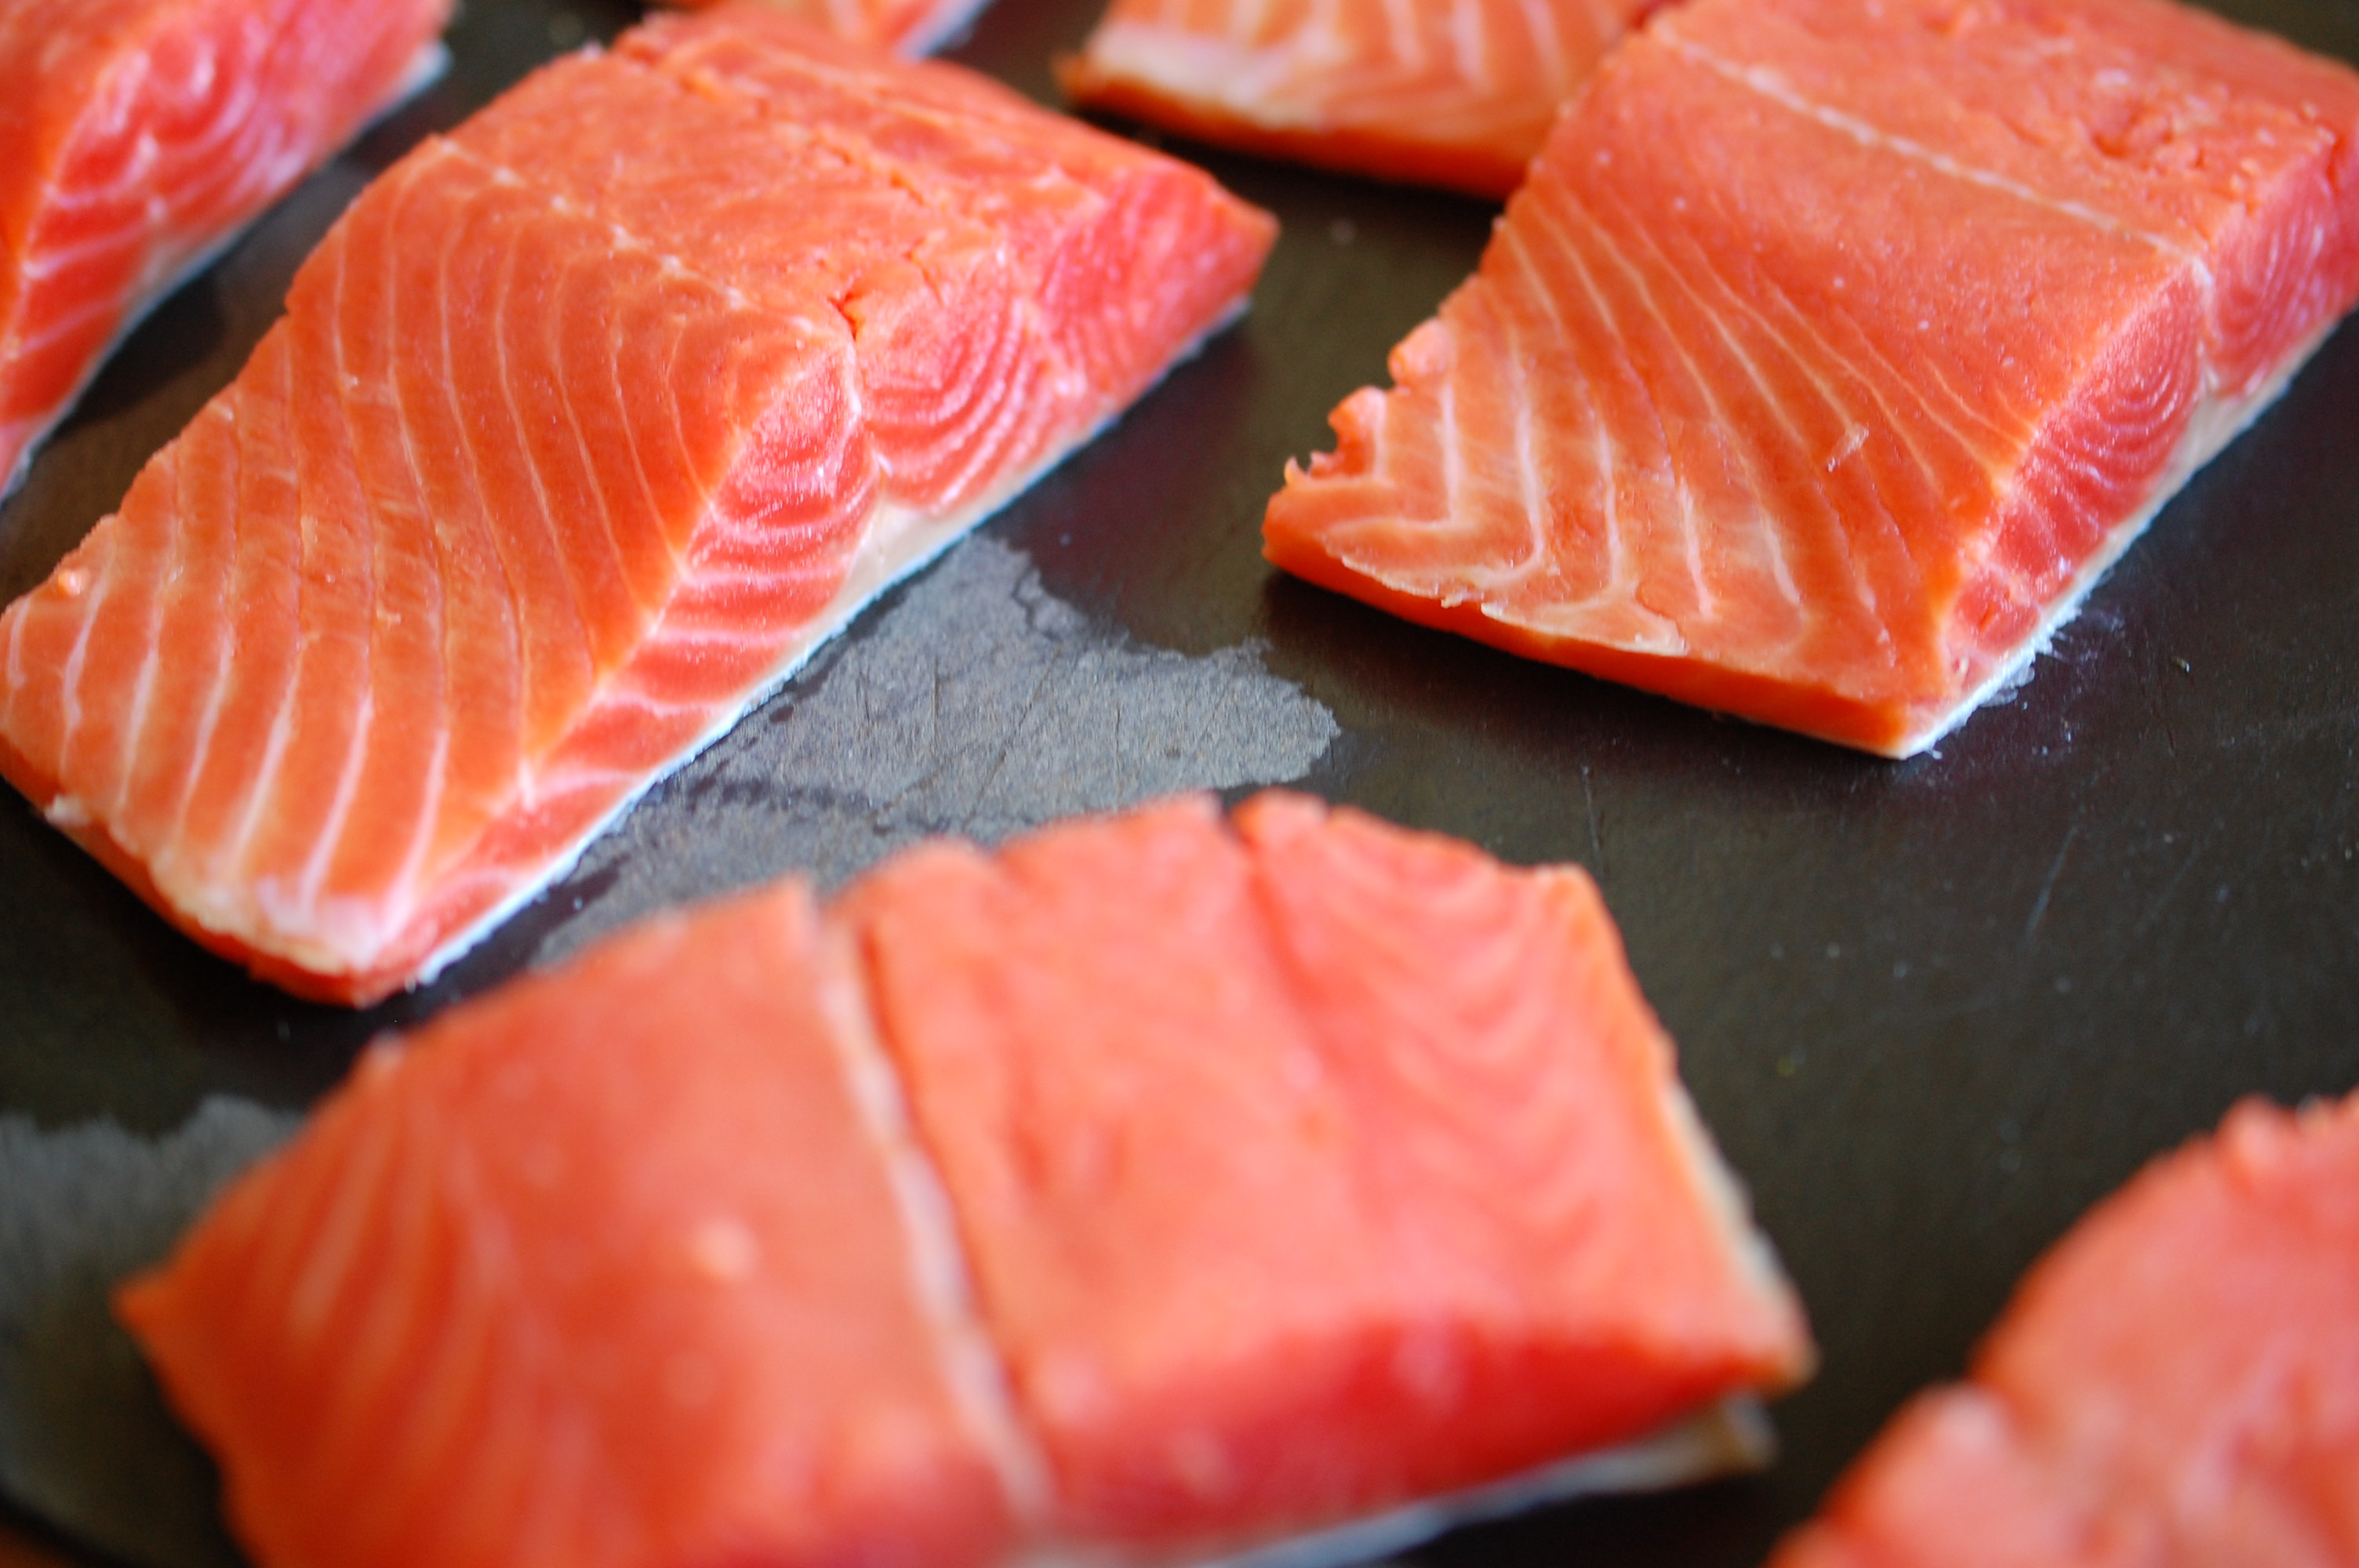 Look how pretty and fresh these salmon pieces are!